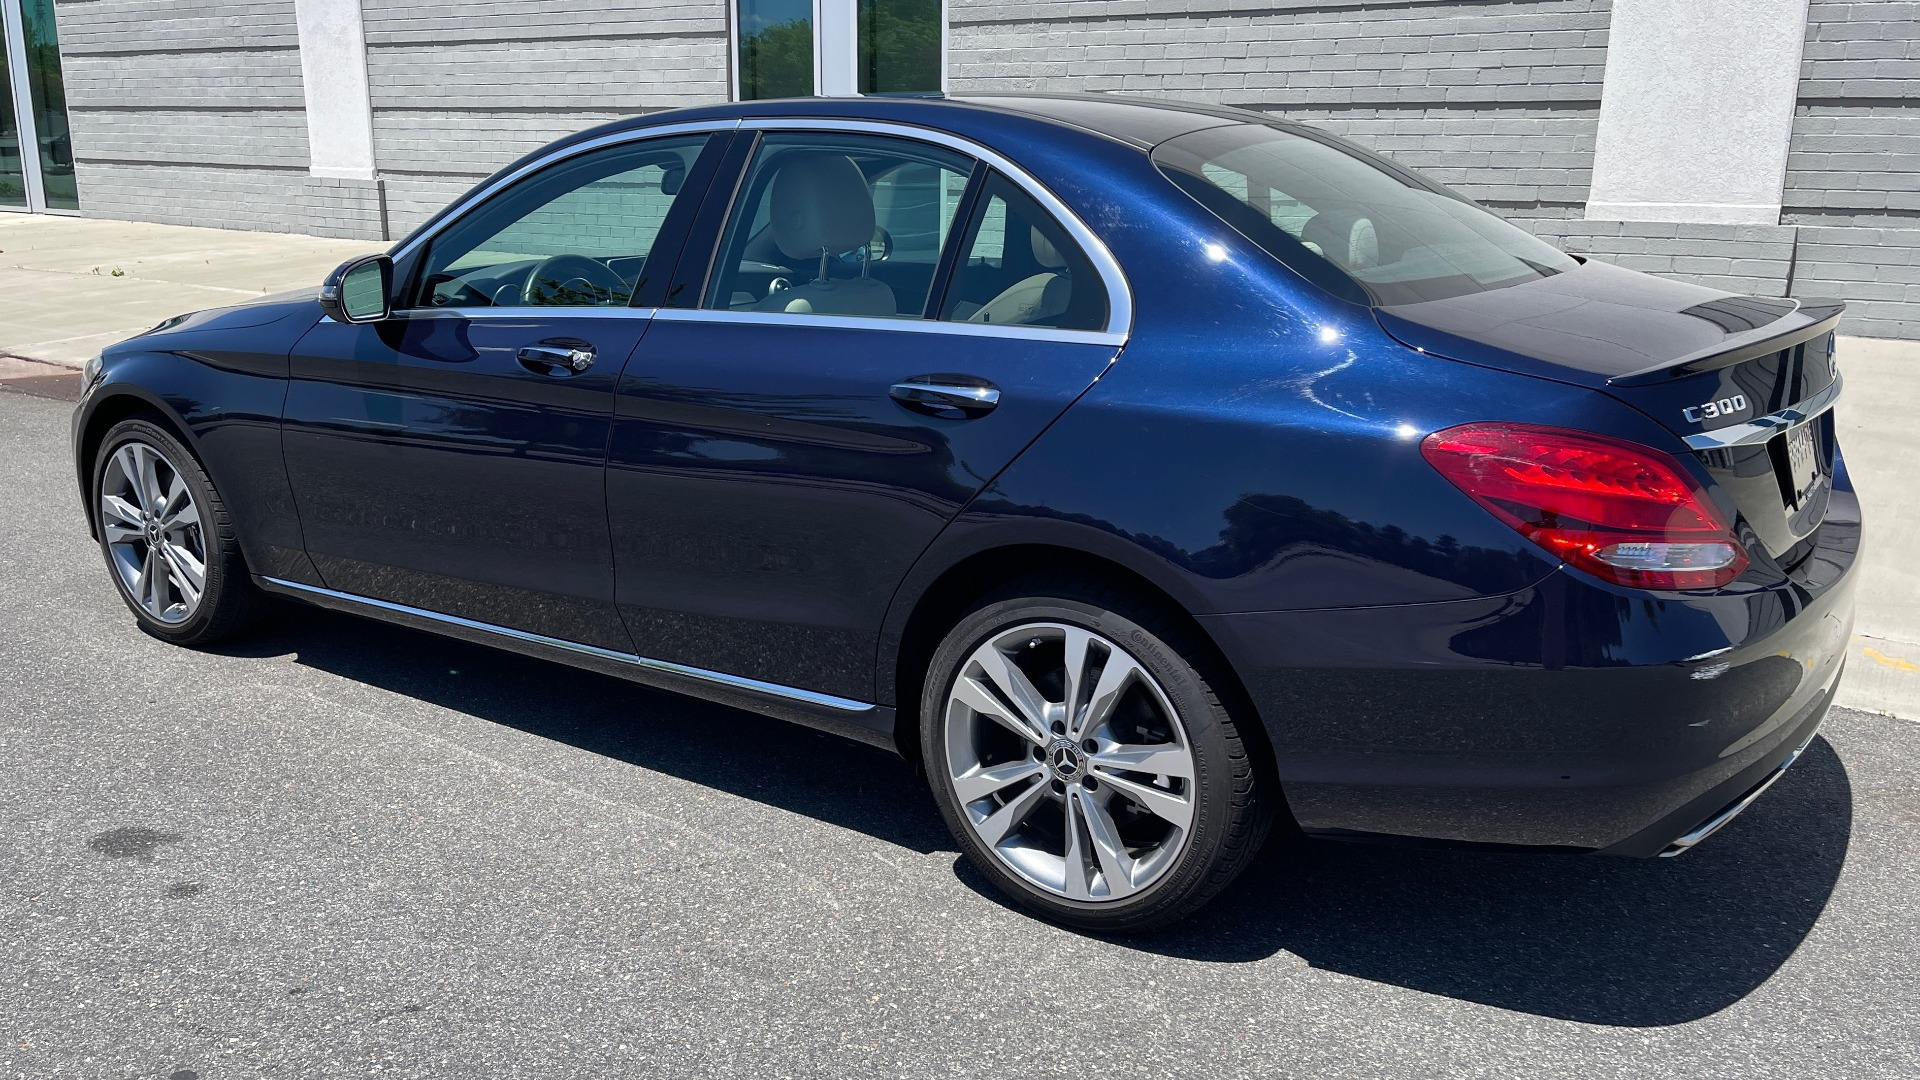 Used 2018 Mercedes-Benz C-CLASS C 300 PREMIUM / KEYLESS-GO / PANO-ROOF / BURMESTER / REARVIEW for sale $29,495 at Formula Imports in Charlotte NC 28227 5